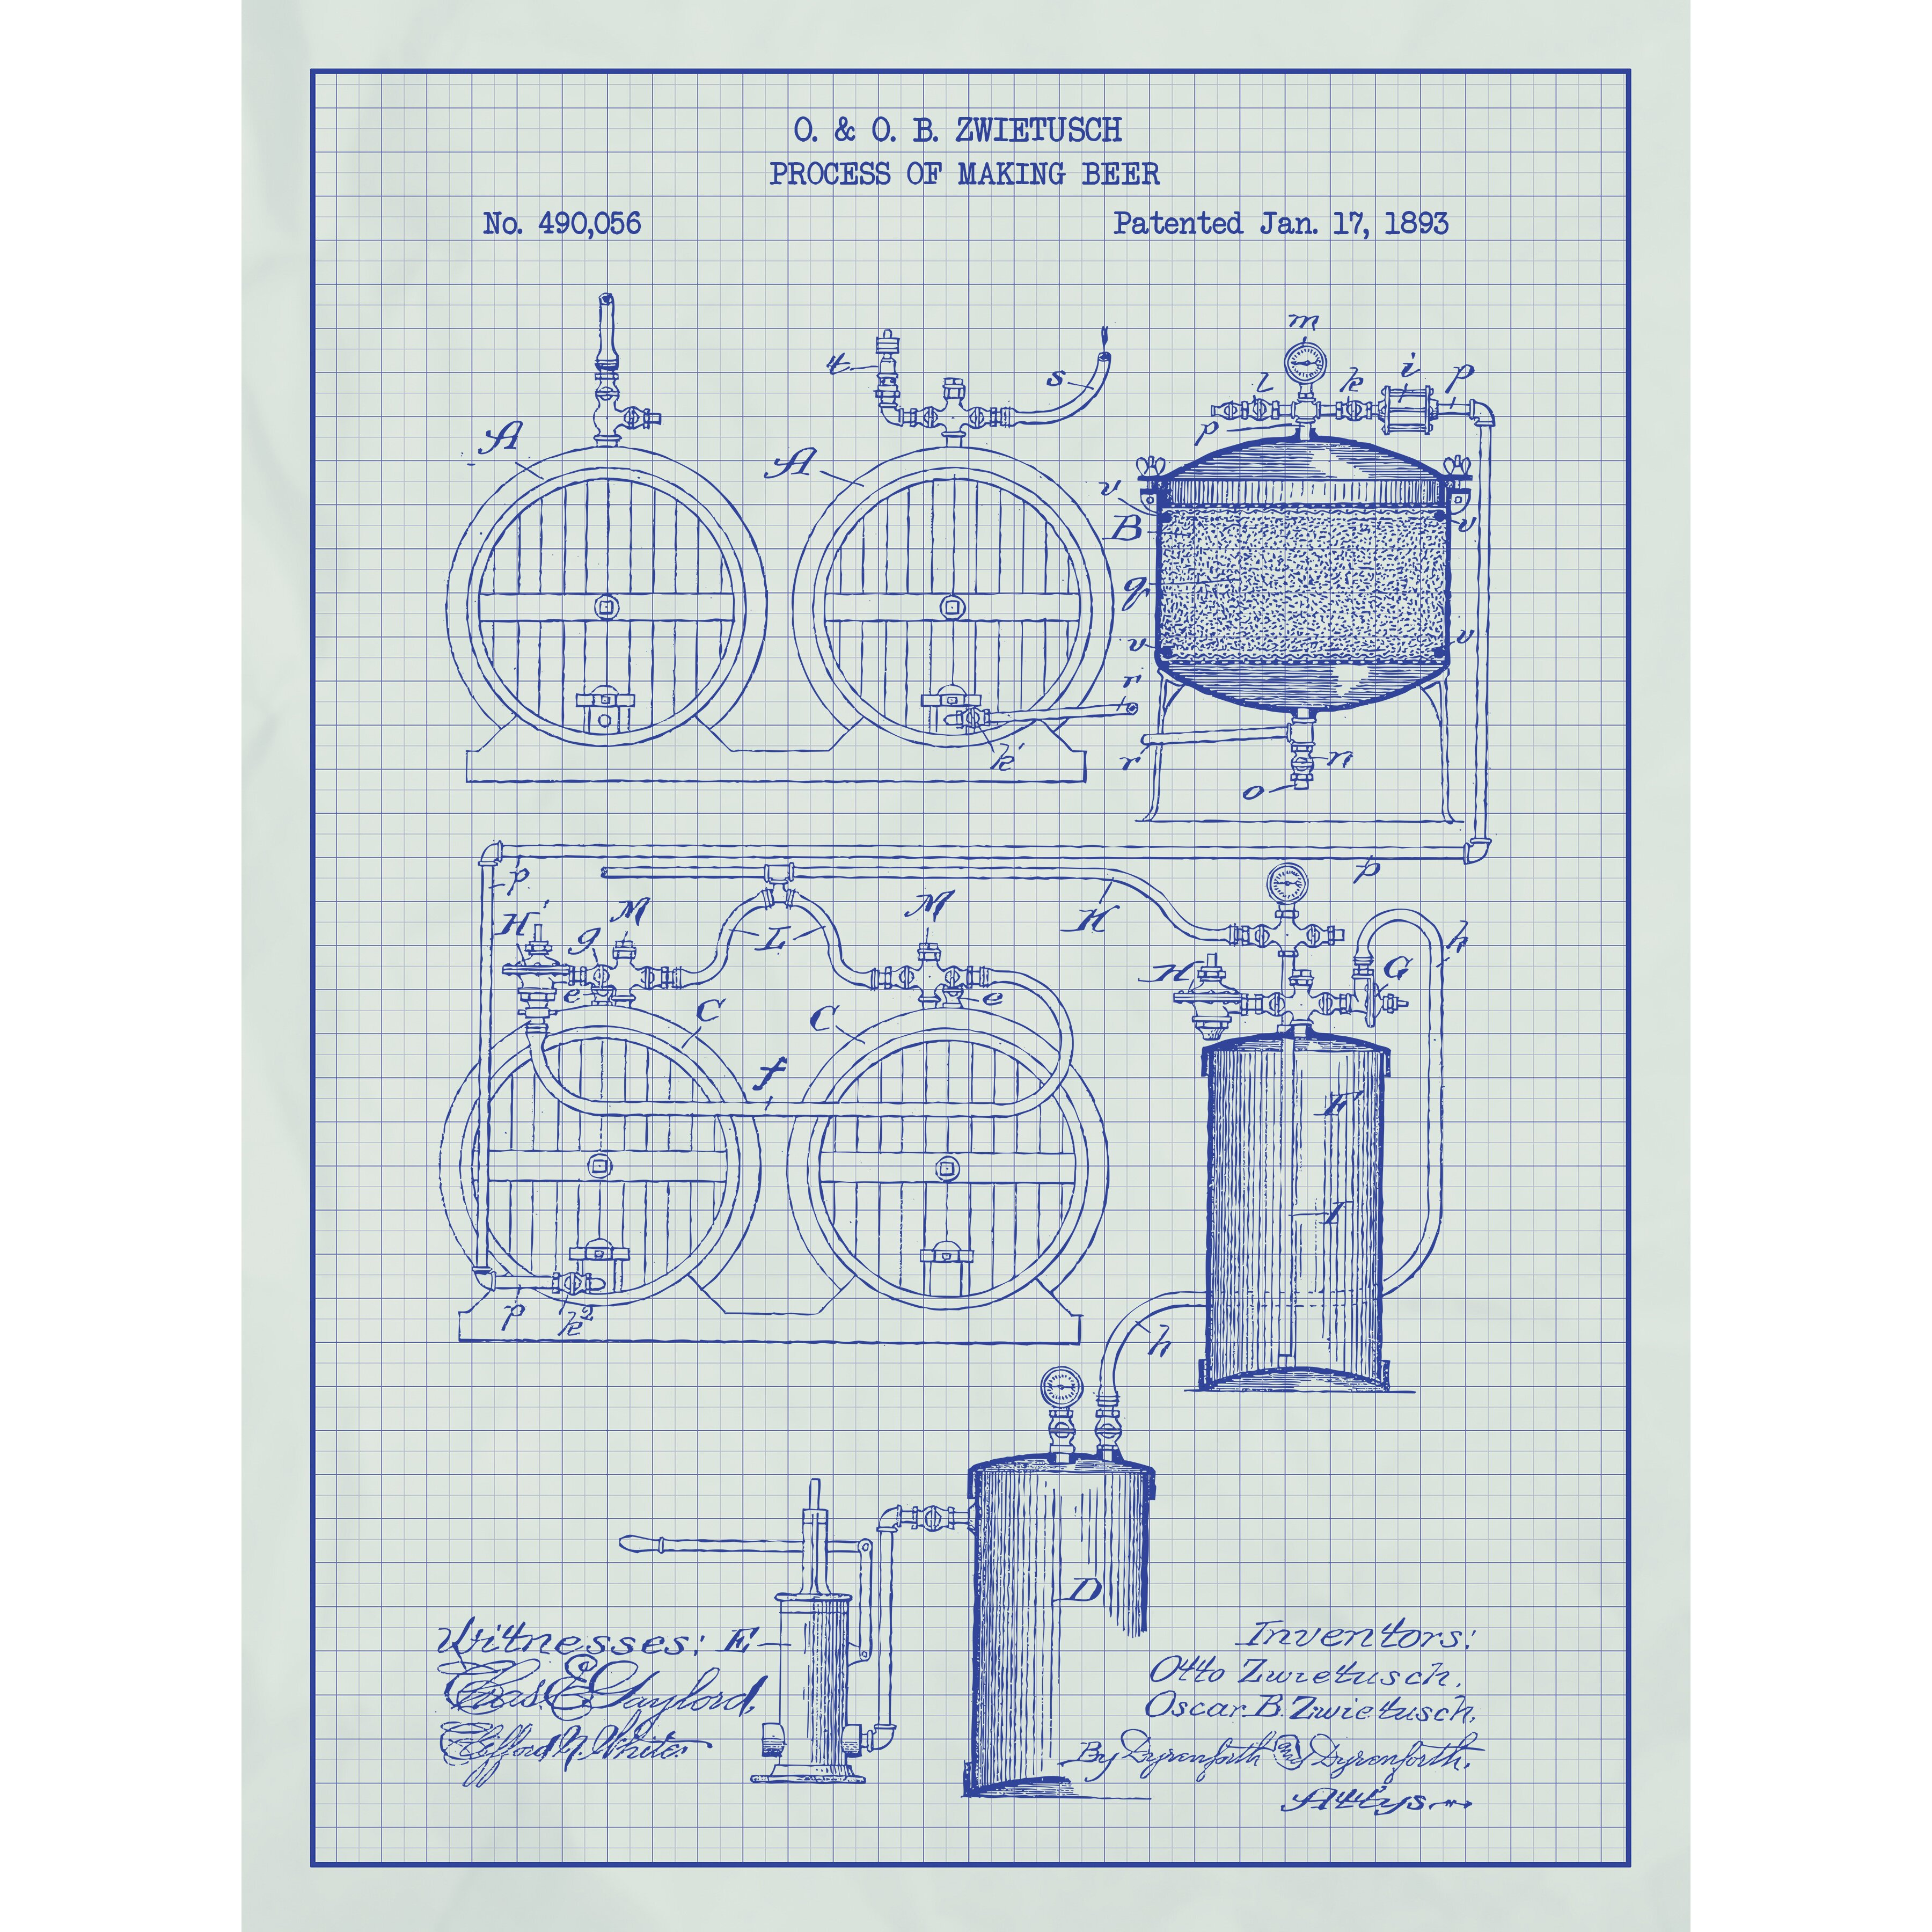 Magnificent Inked And Screened Process Of Making Beer Blueprint Graphic Art Home Design Photos Ideas Notavaius